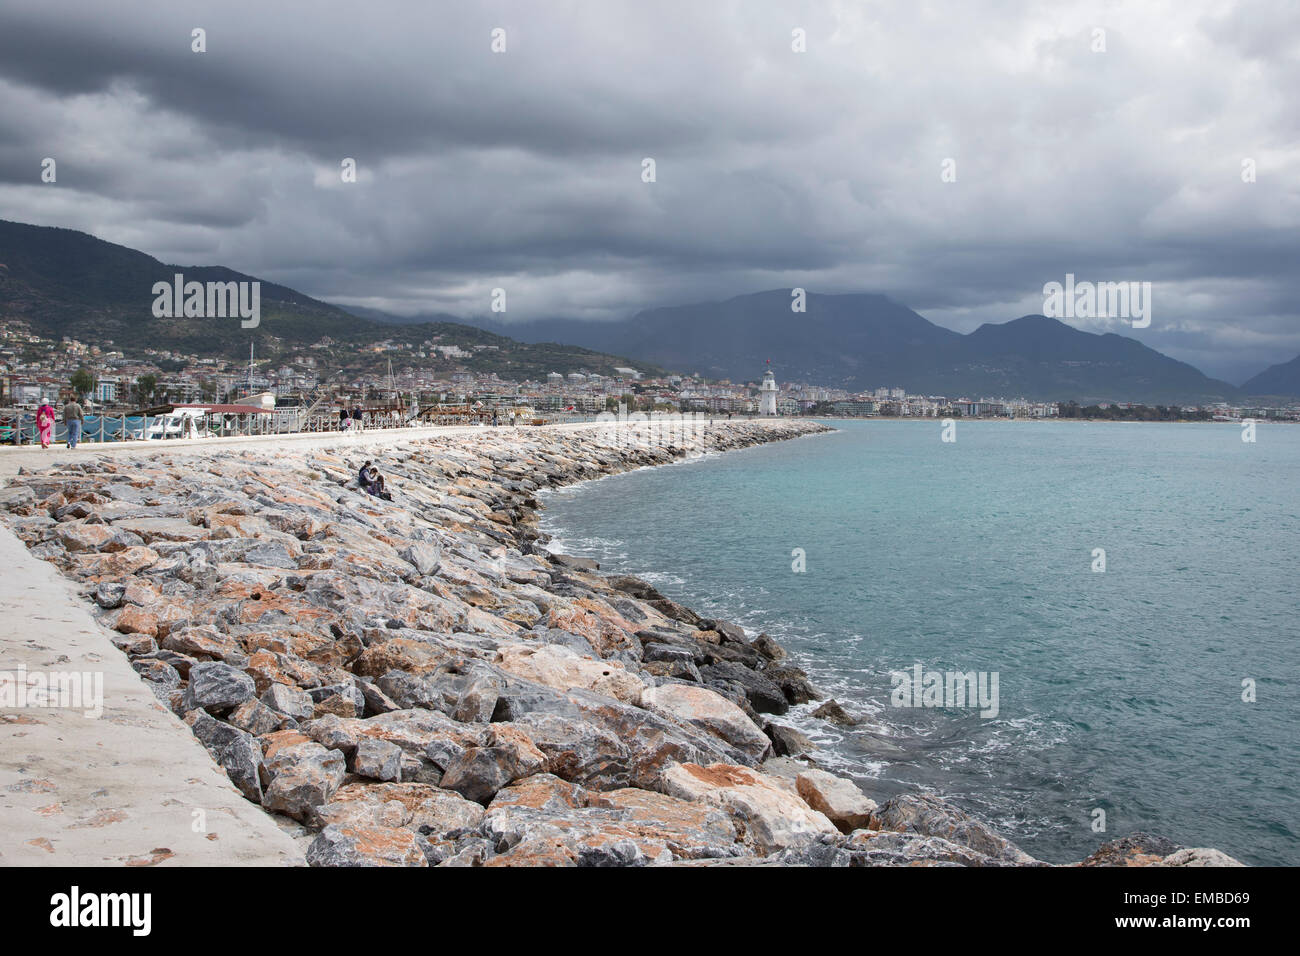 Harbour harbor wall and stone breakwater at Alanya seaport in Turkey - Stock Image